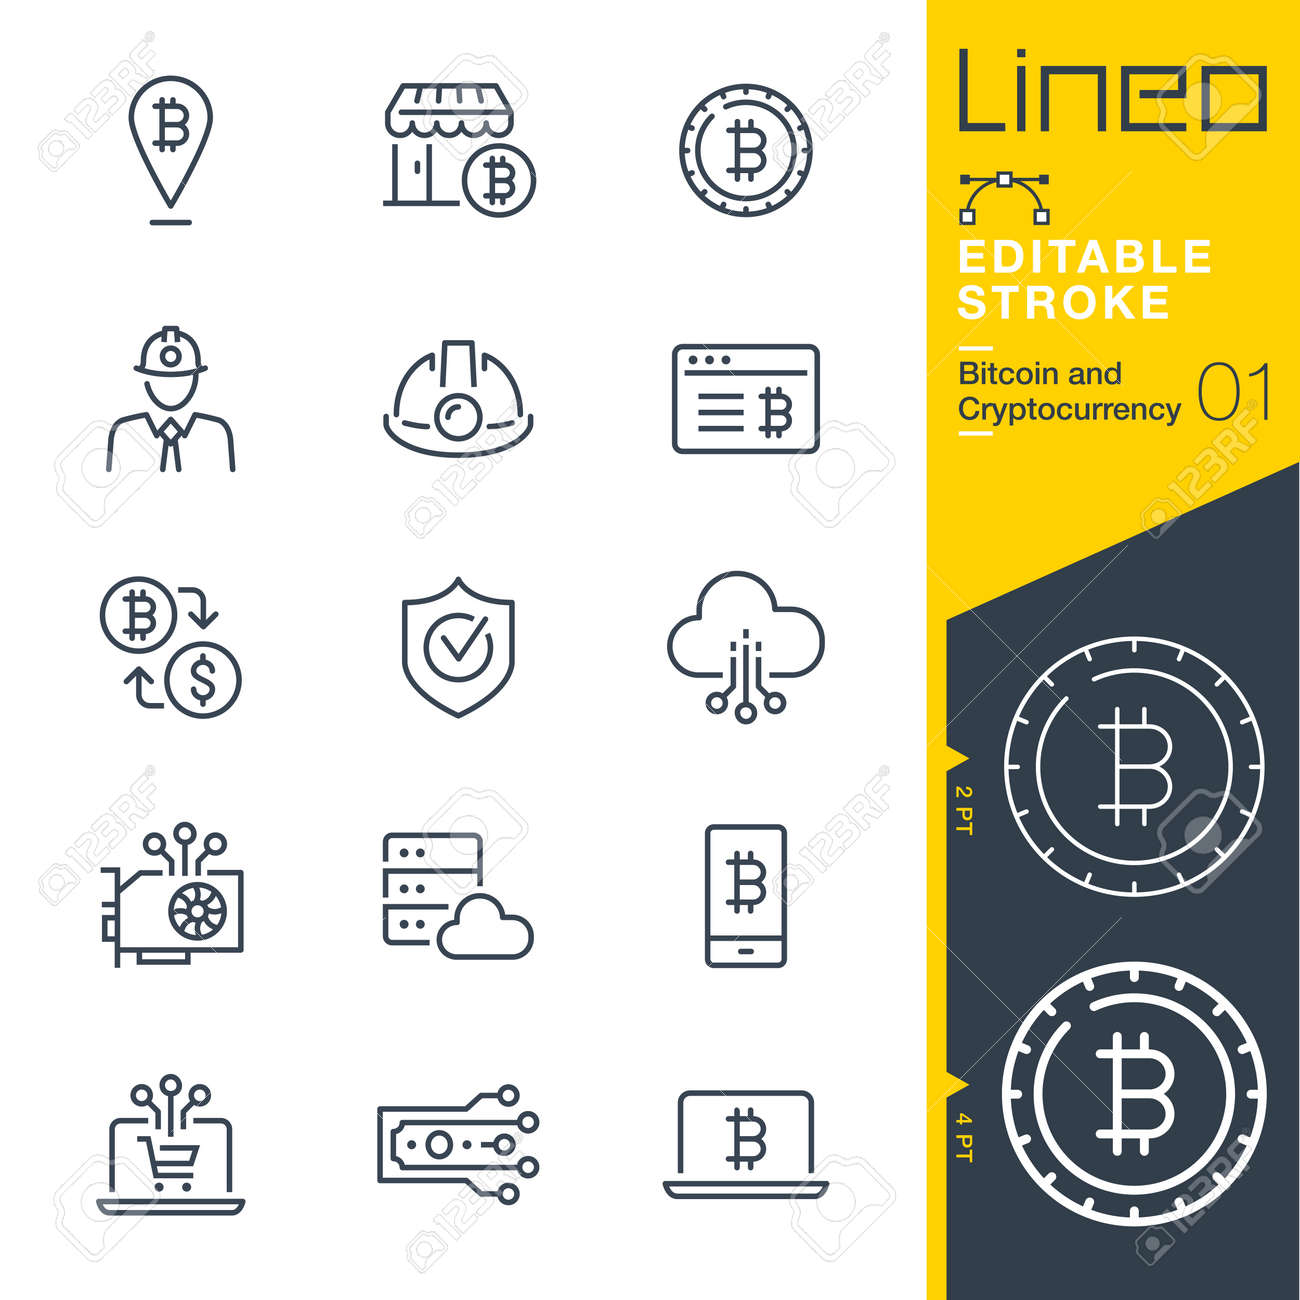 Lineo Editable Stroke - Bitcoin and Cryptocurrency line icons - 104159892